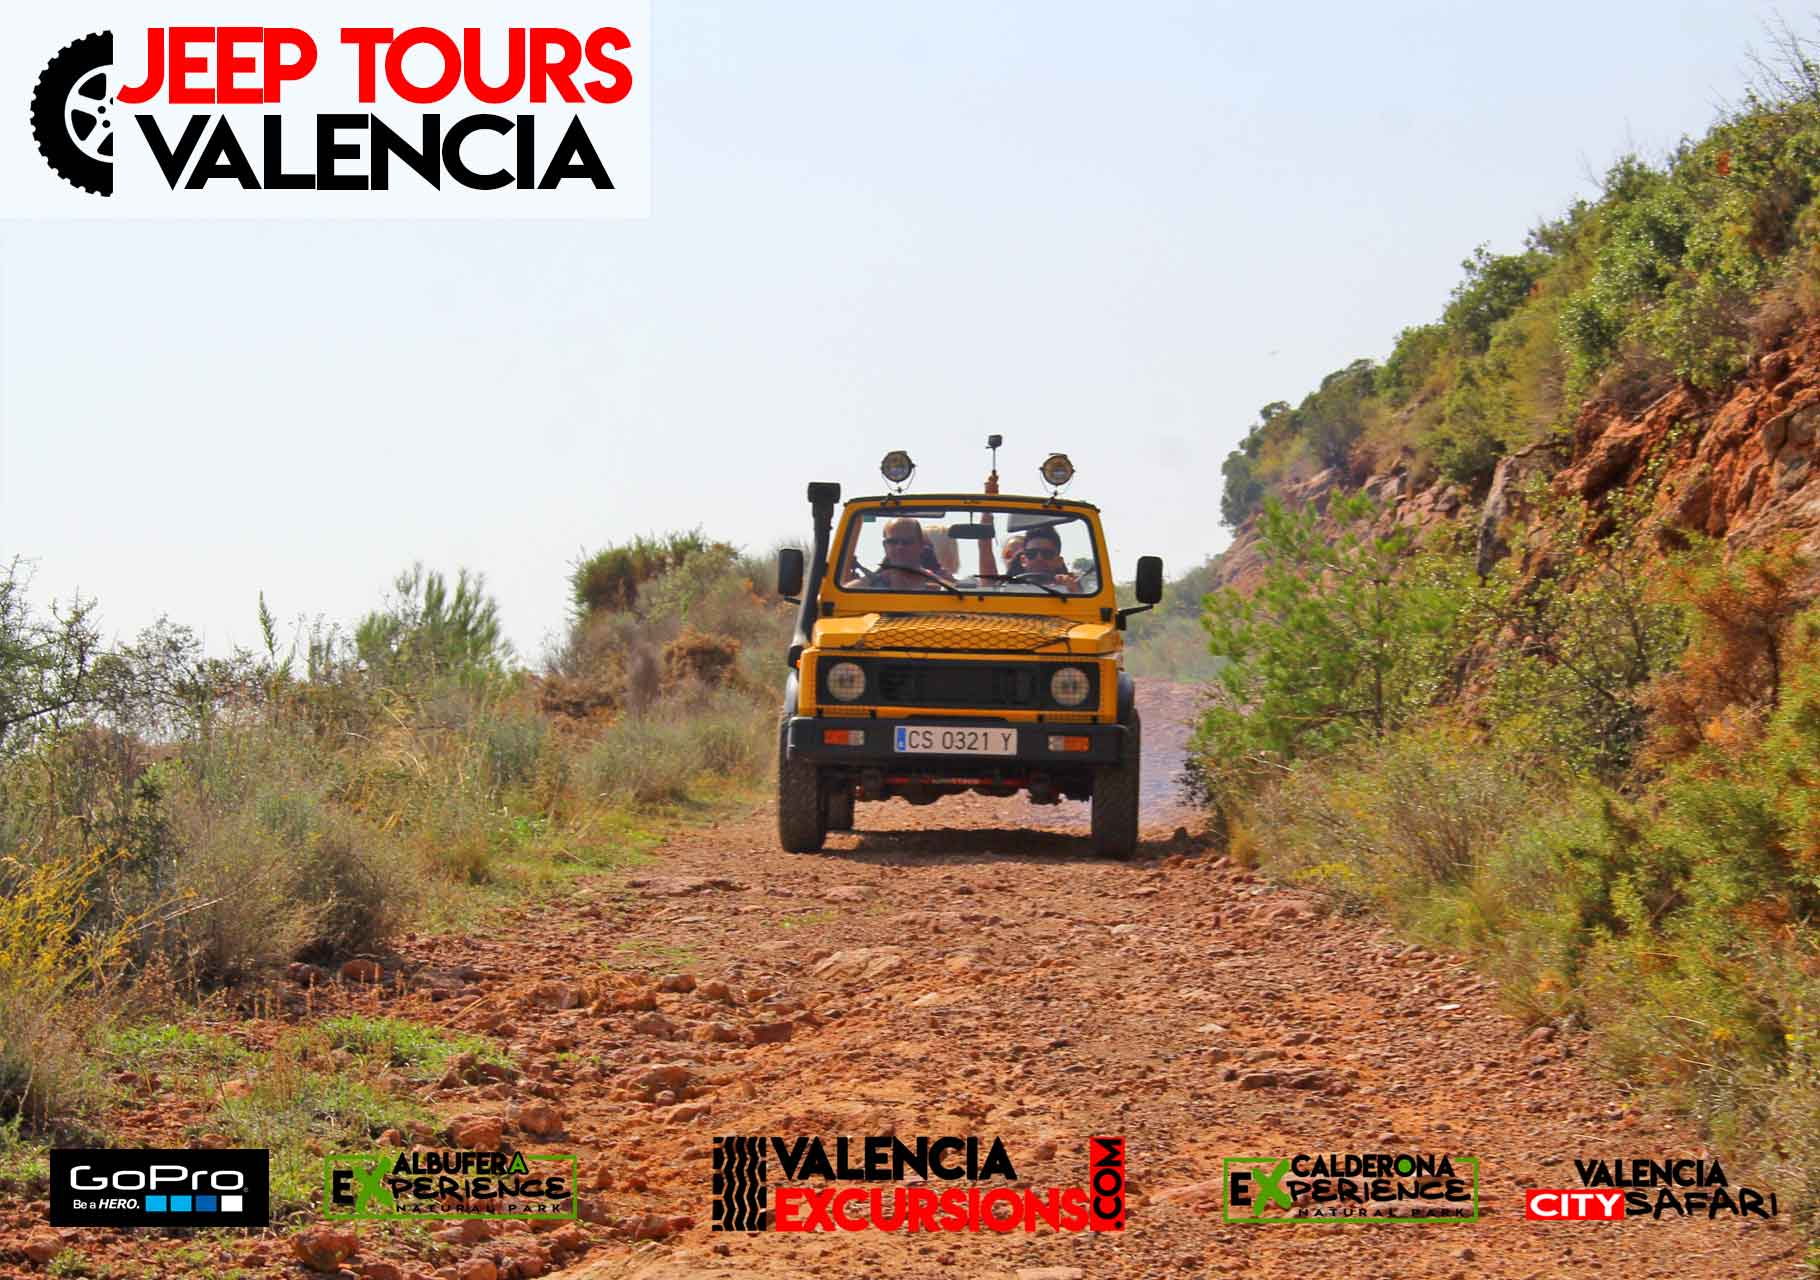 visit Valencia national parks